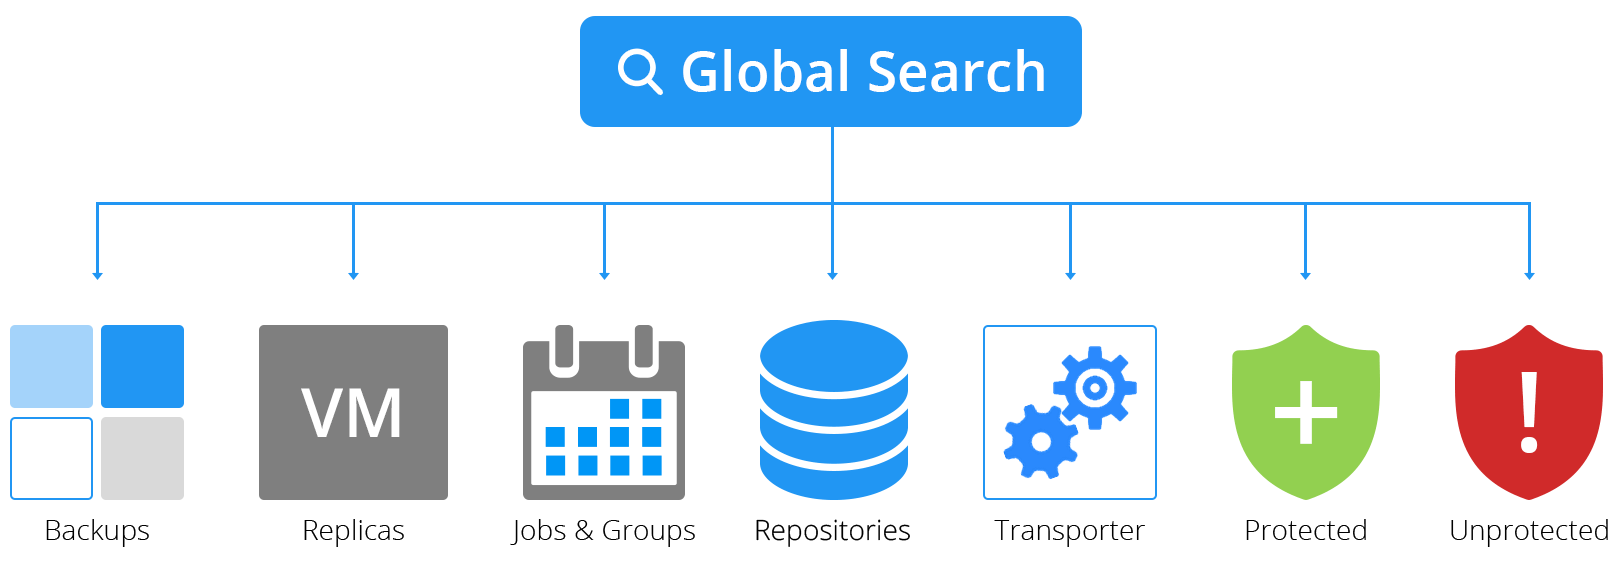 Global Search in NAKIVO Backup & Replication v7.4